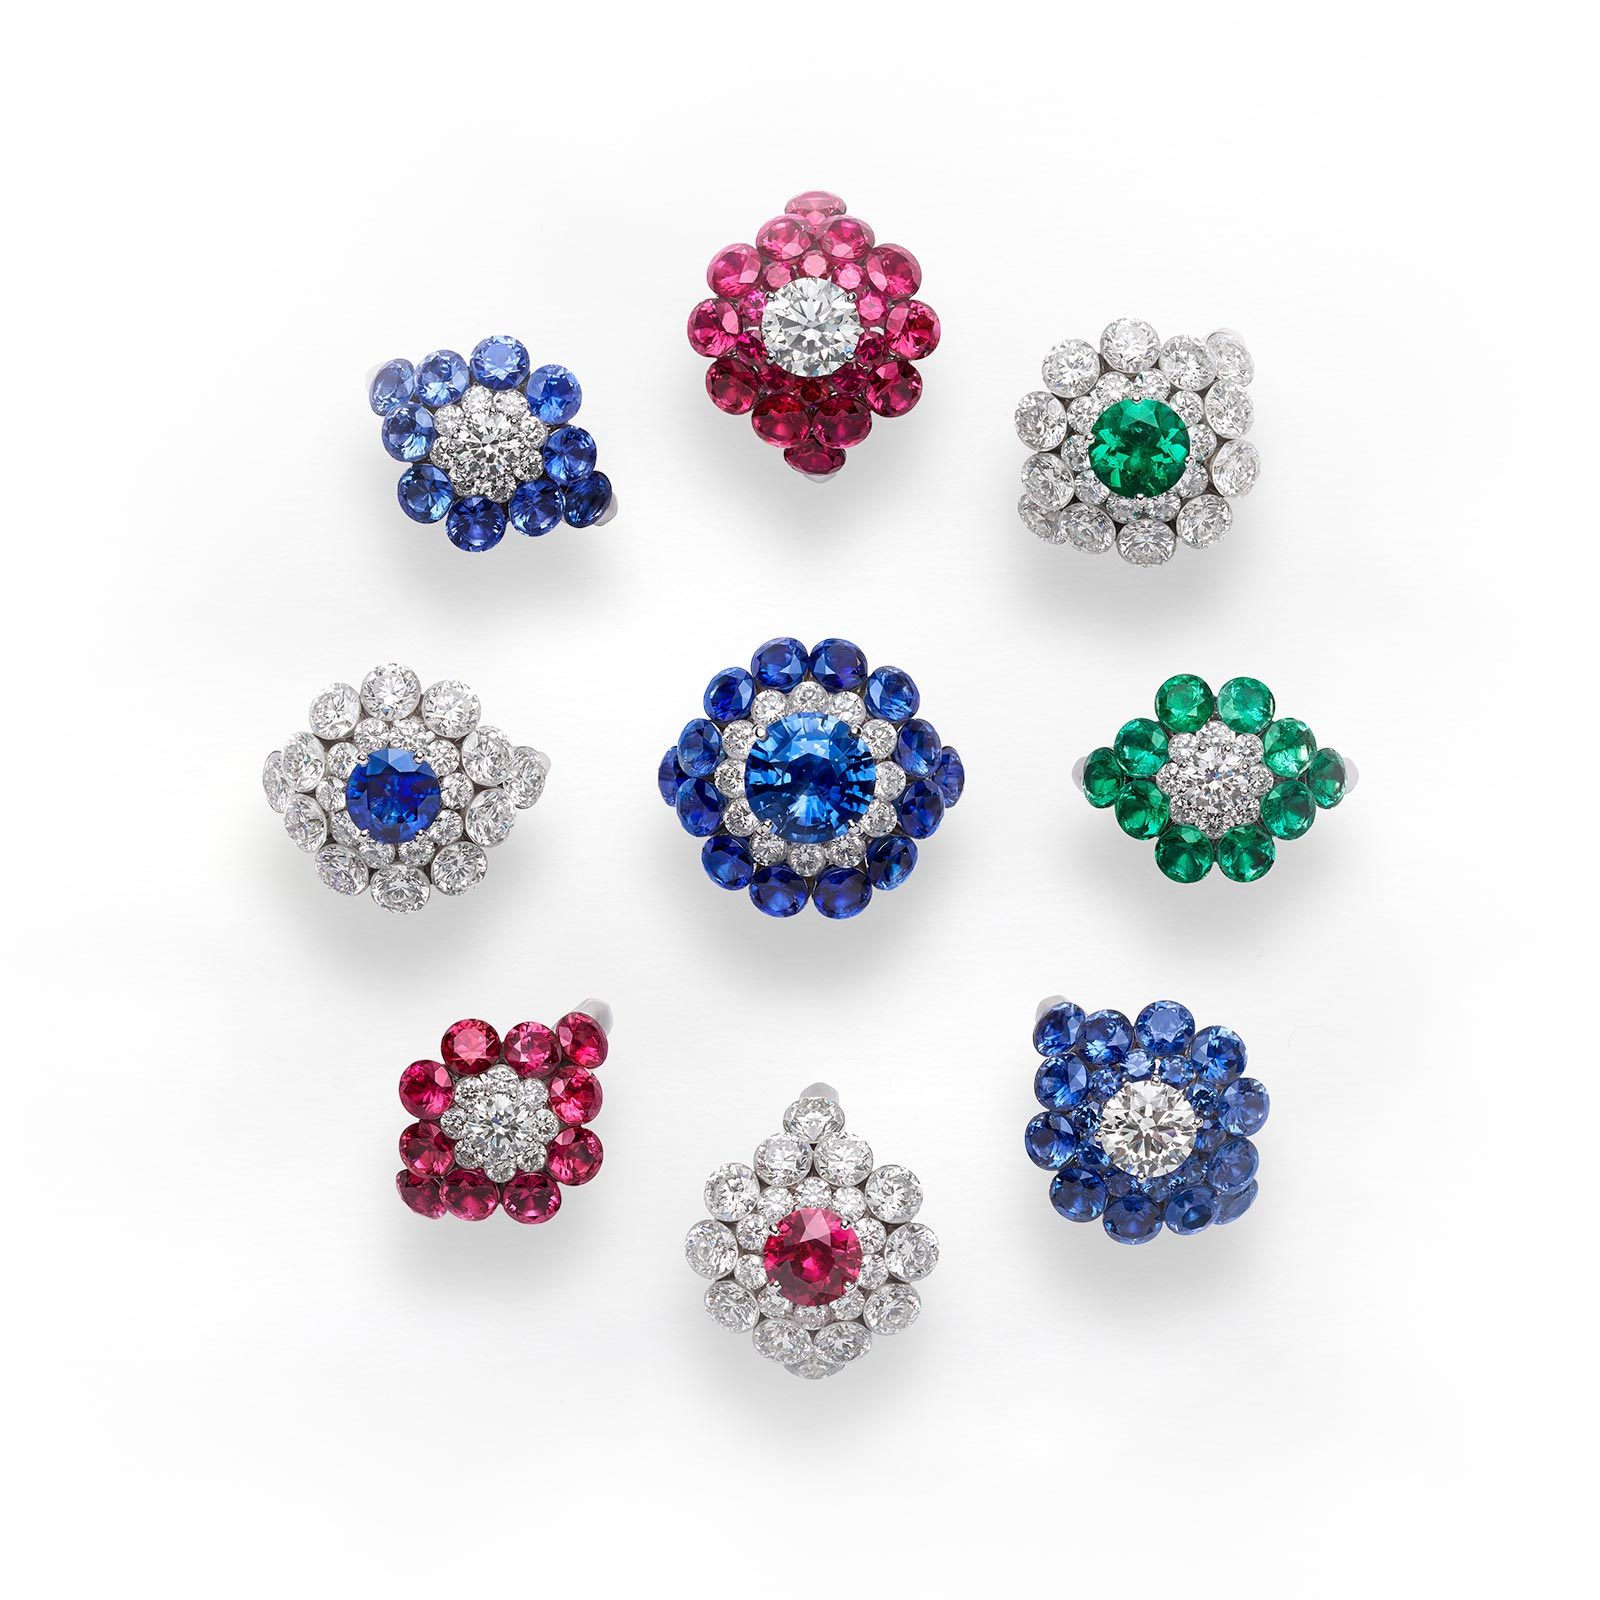 Alta Gioielleria: Chopard Magical Setting Rings